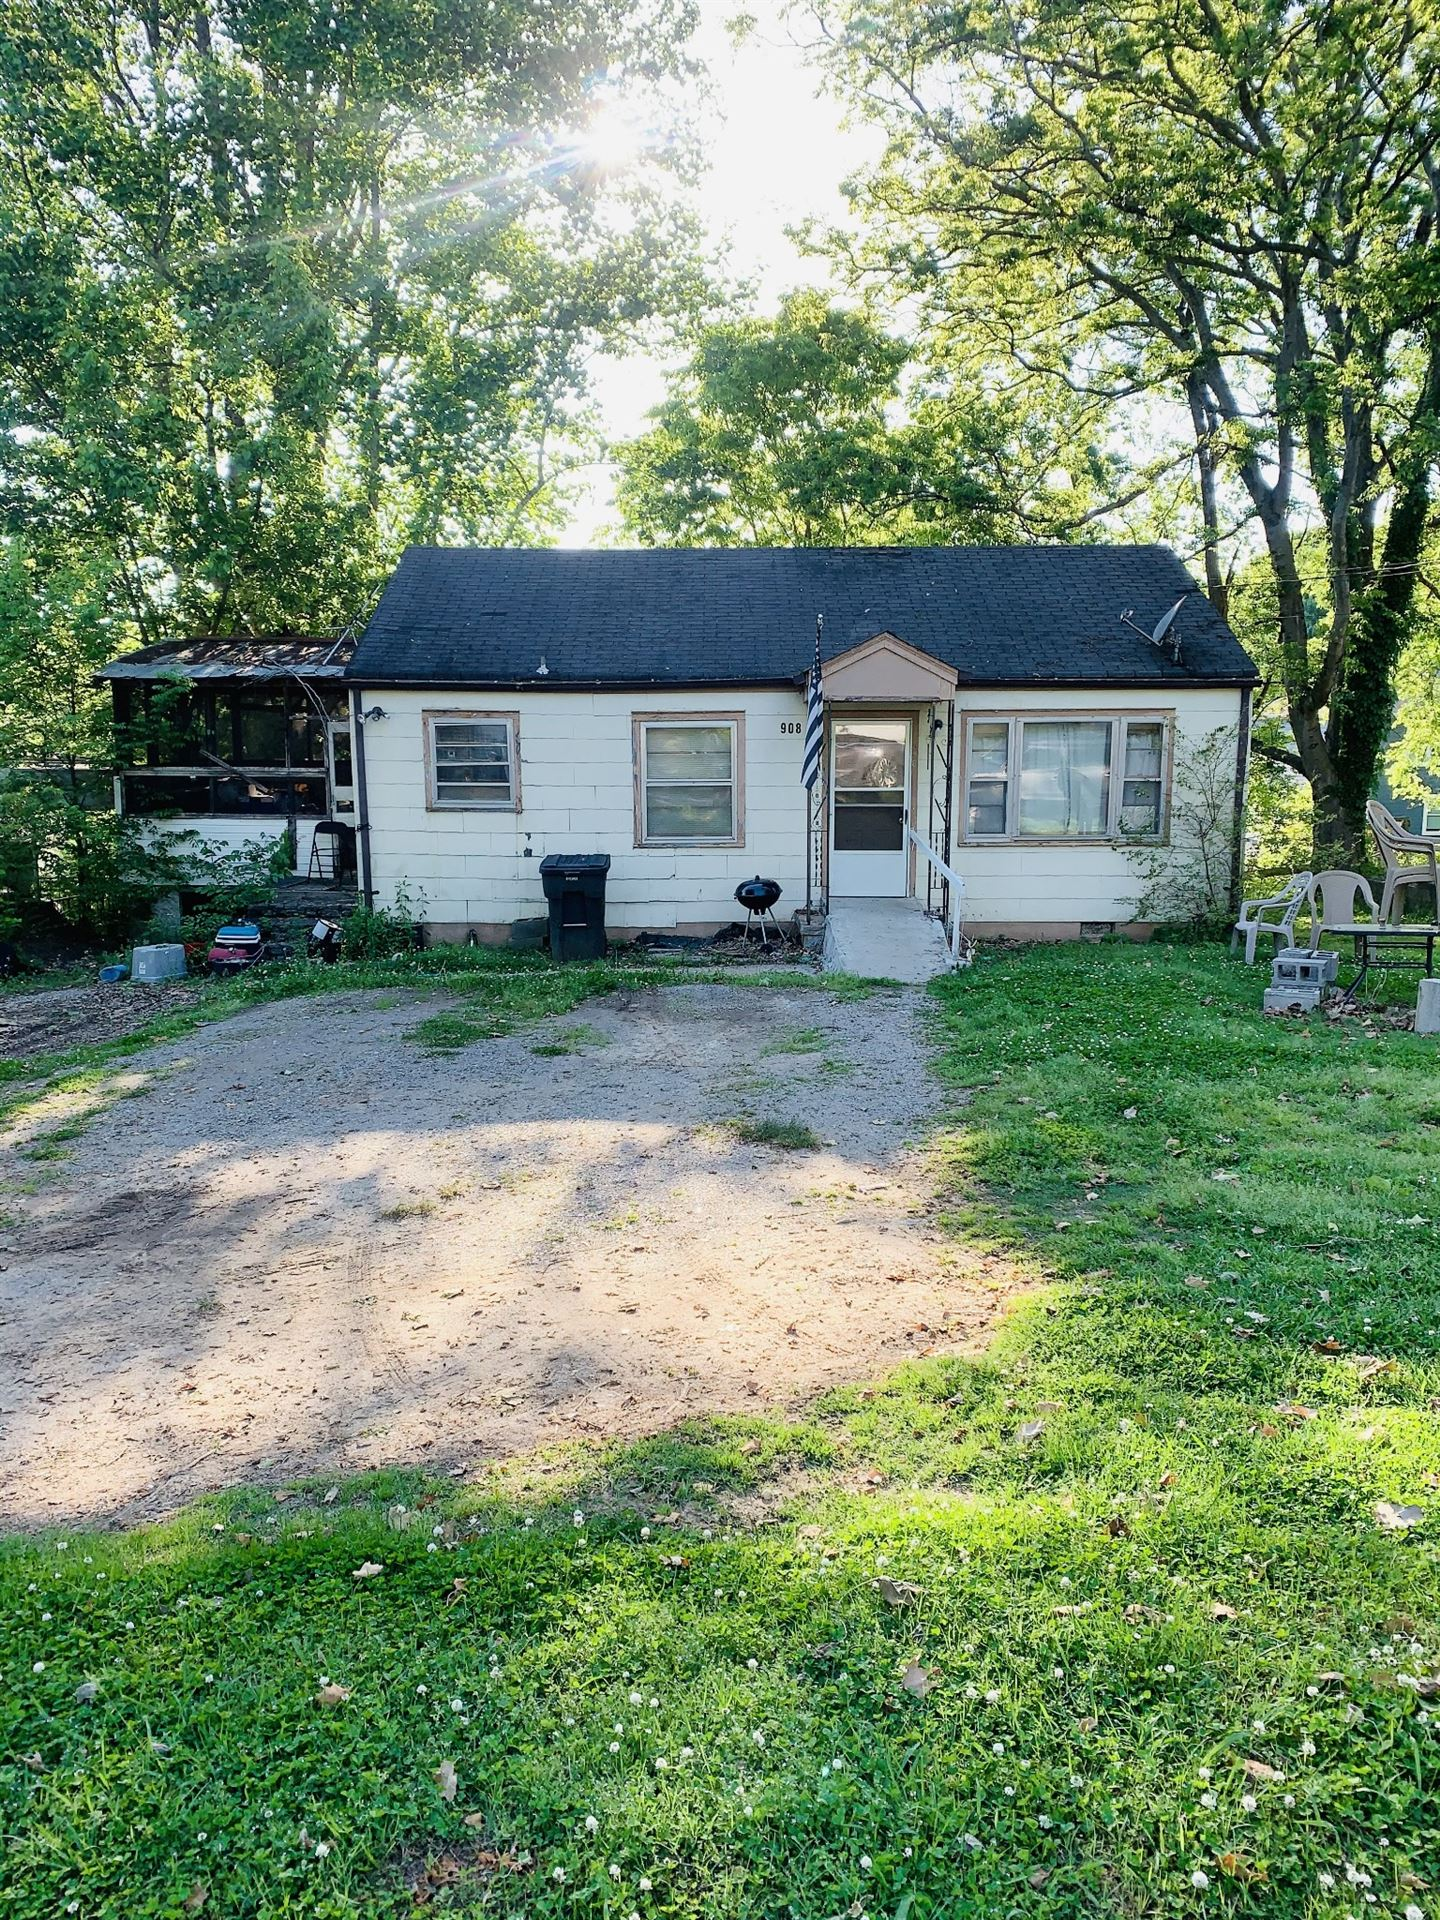 908 E. Valley Dr, Columbia, TN 38401 - MLS#: 2252143